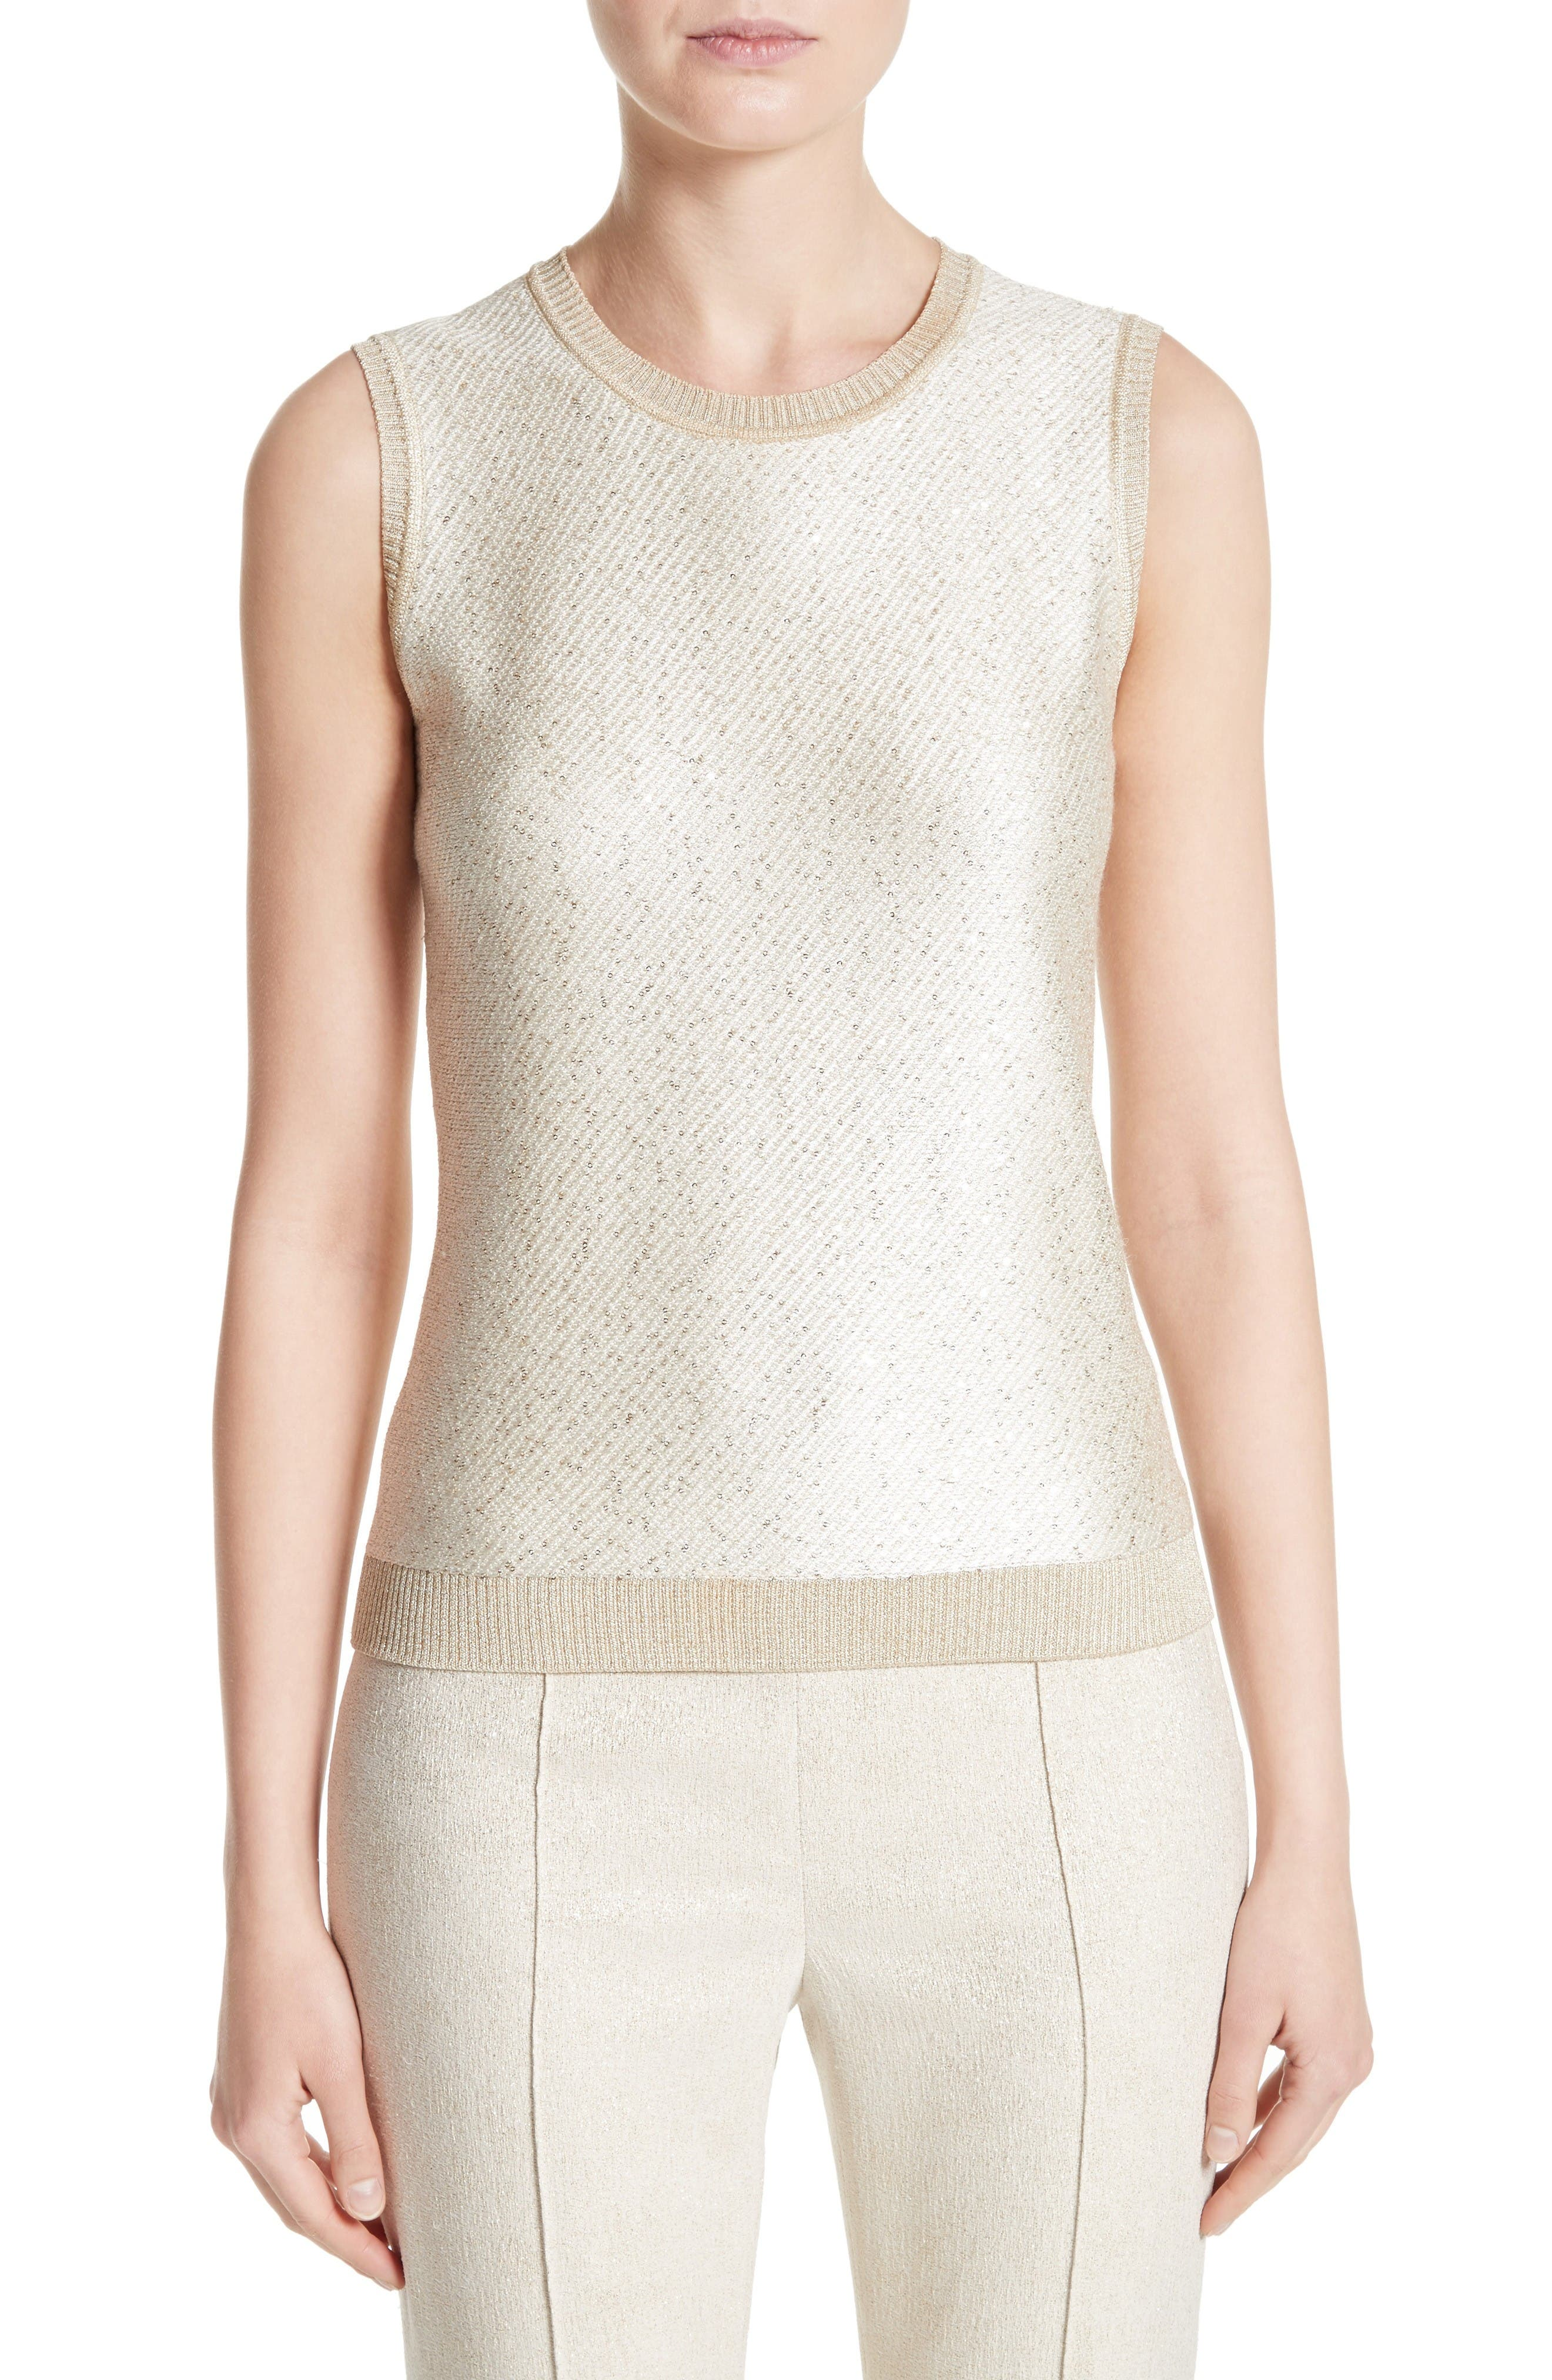 Main Image - St. John Collection Vivaan Sequin Knit Shell